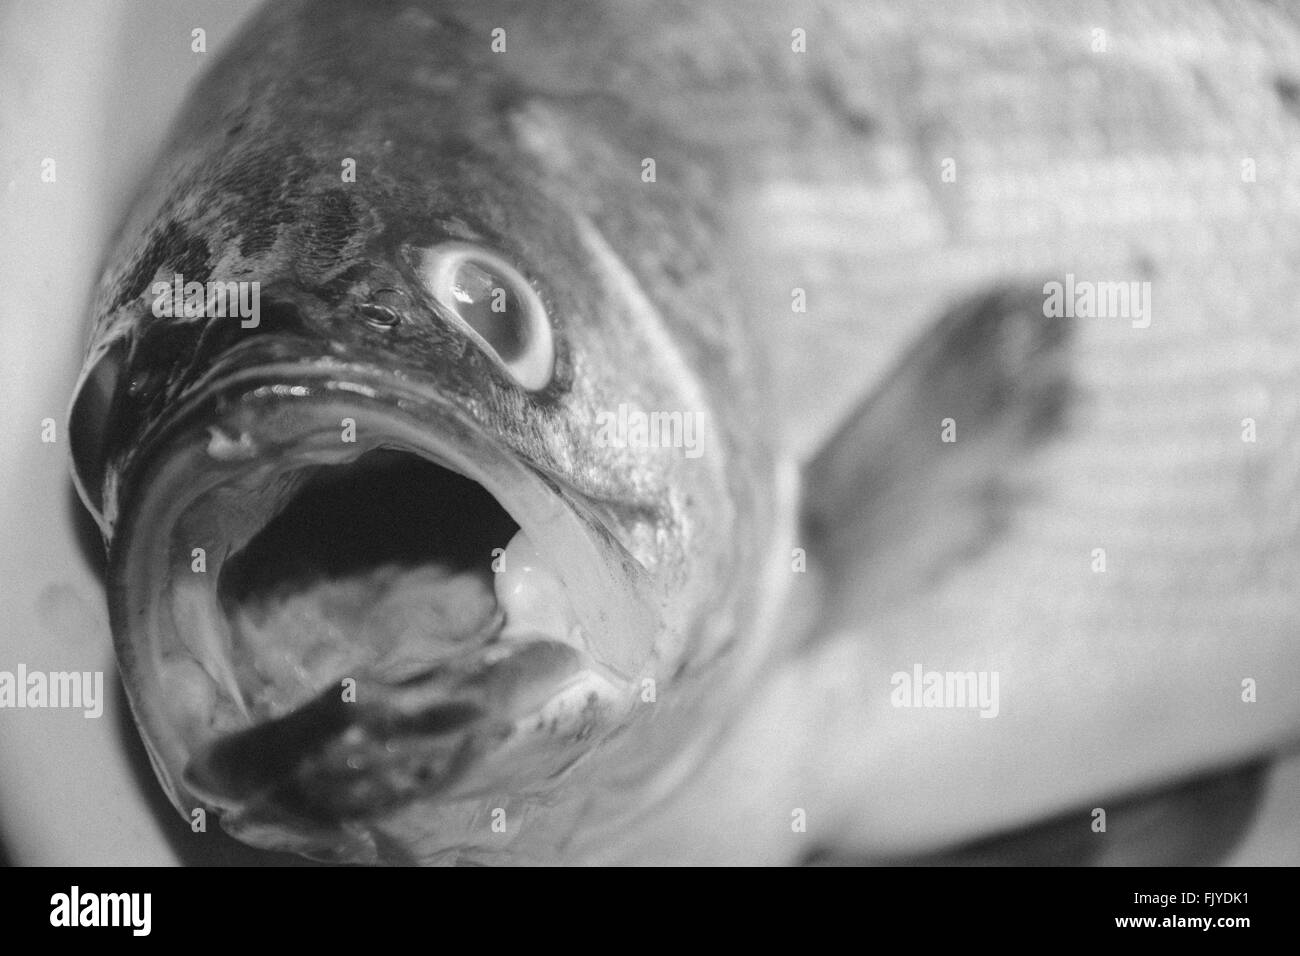 Close-Up Of Dead Fish - Stock Image